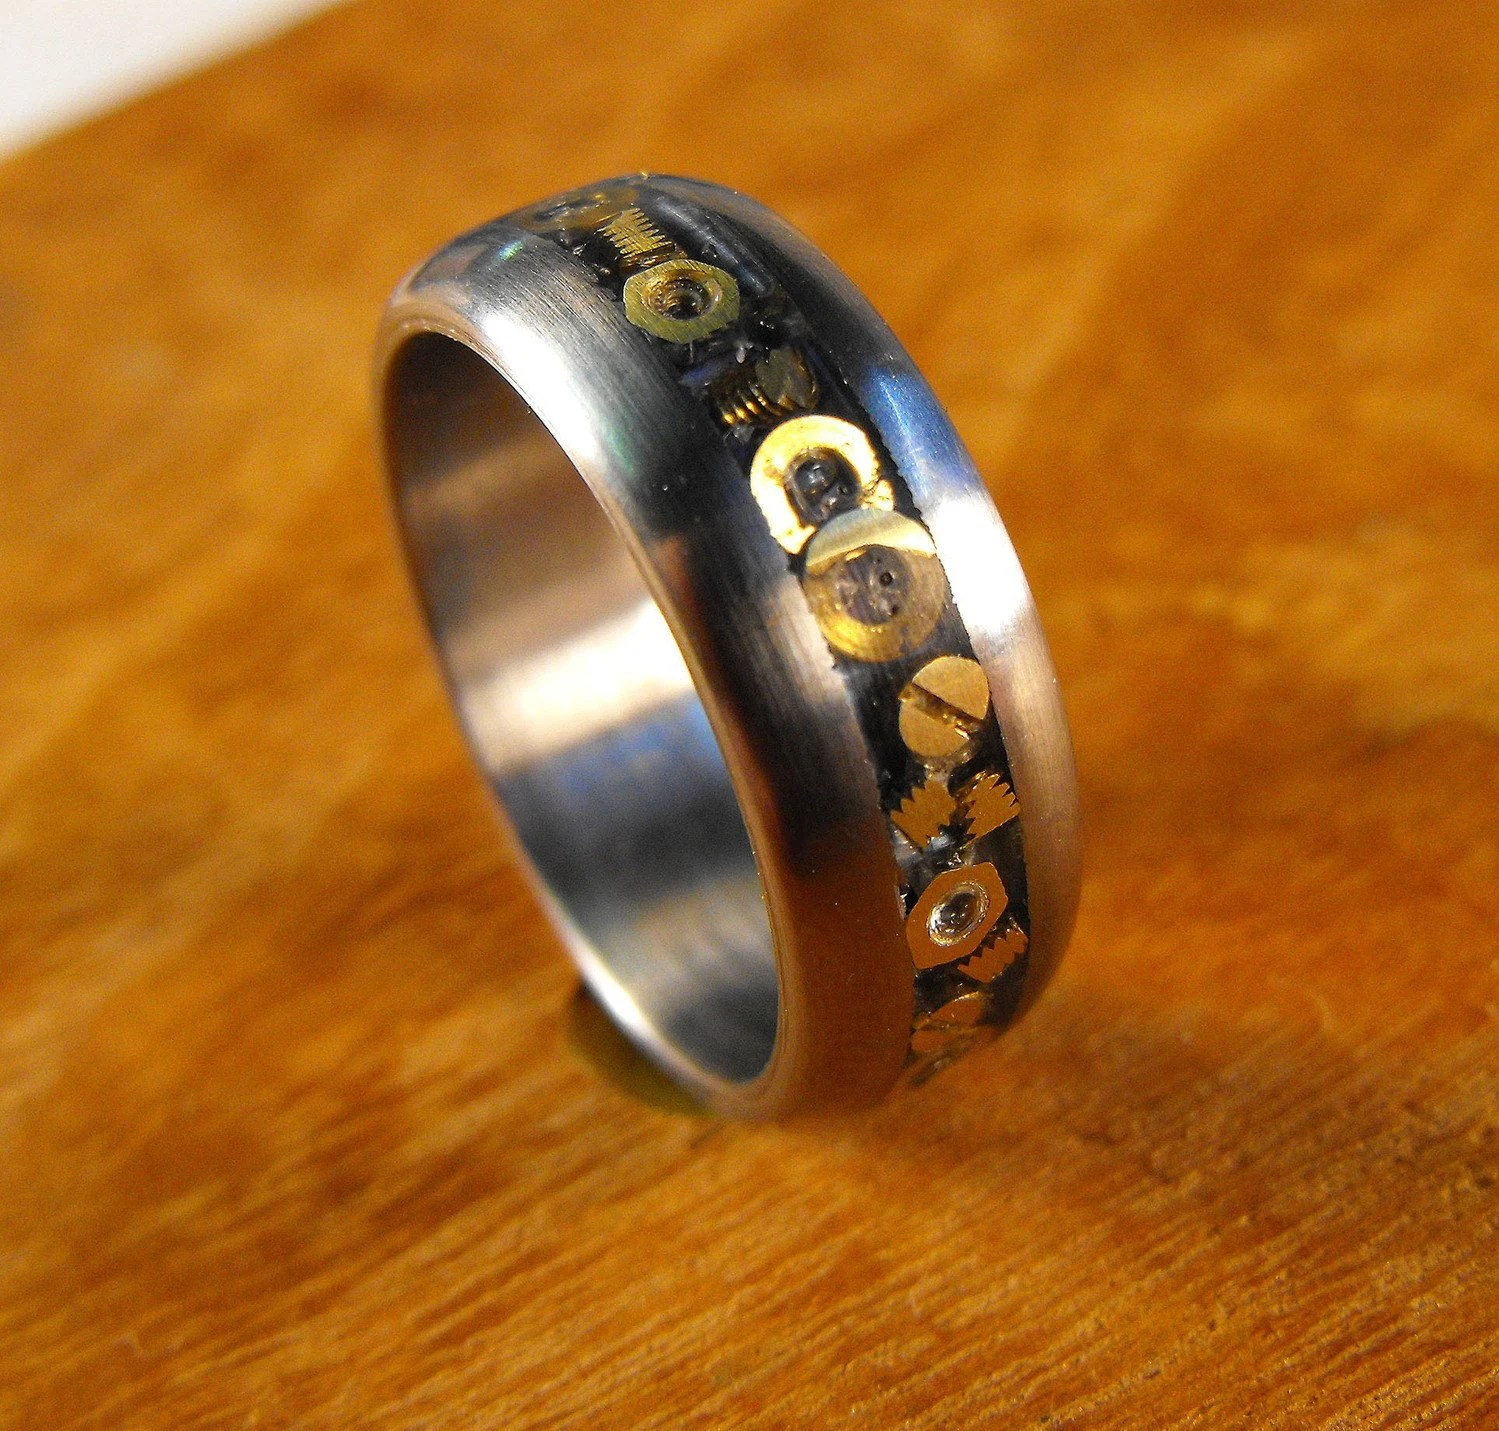 Titanium Wedding Ring With Inlaid Hardware The Nuts And Bolts